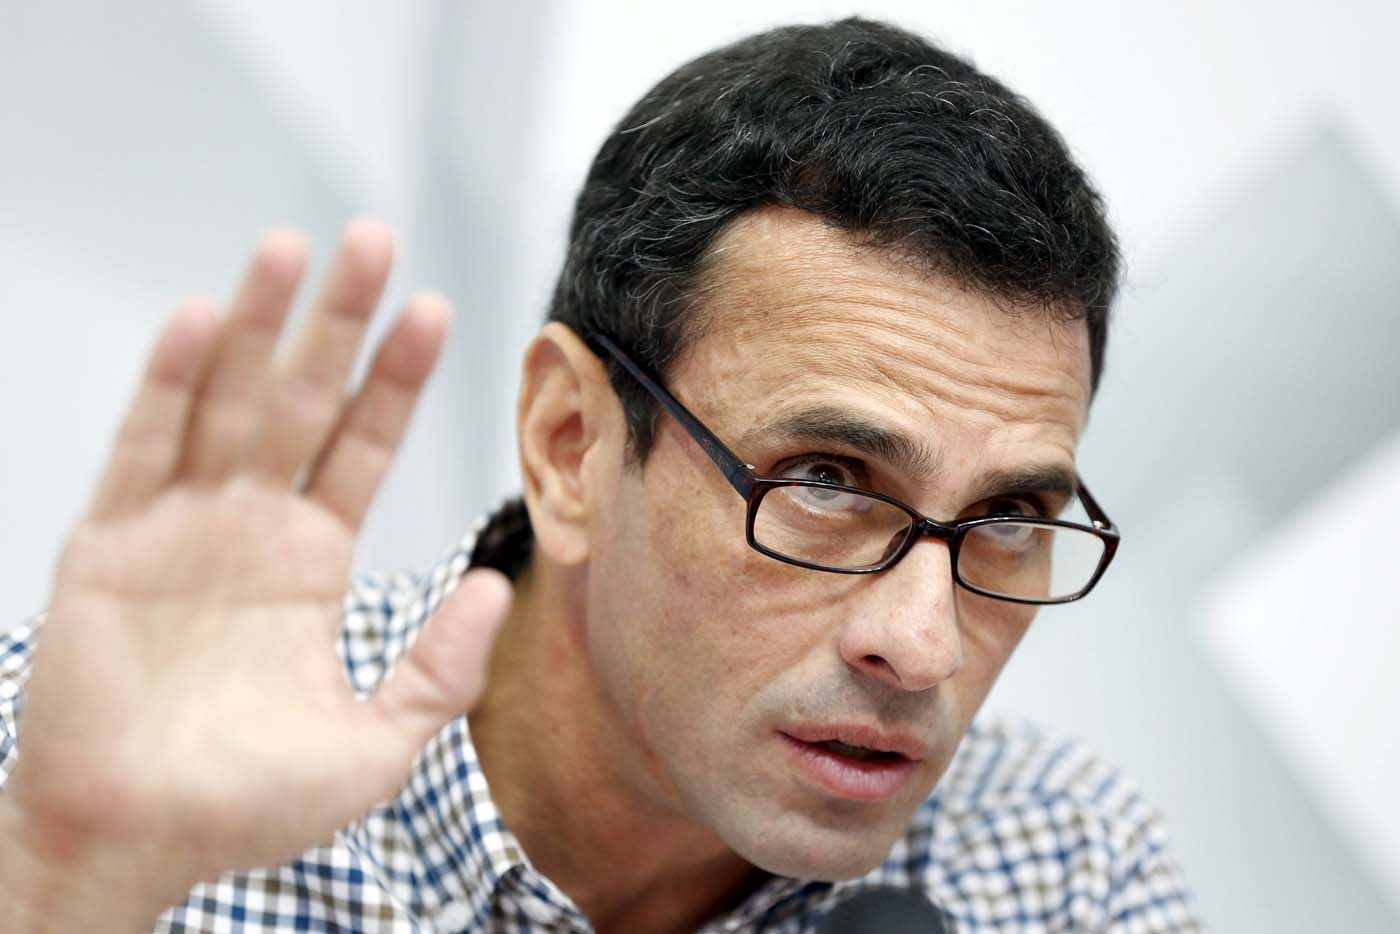 Venezuelan opposition leader Henrique Capriles talks to the media during a news conference in Caracas